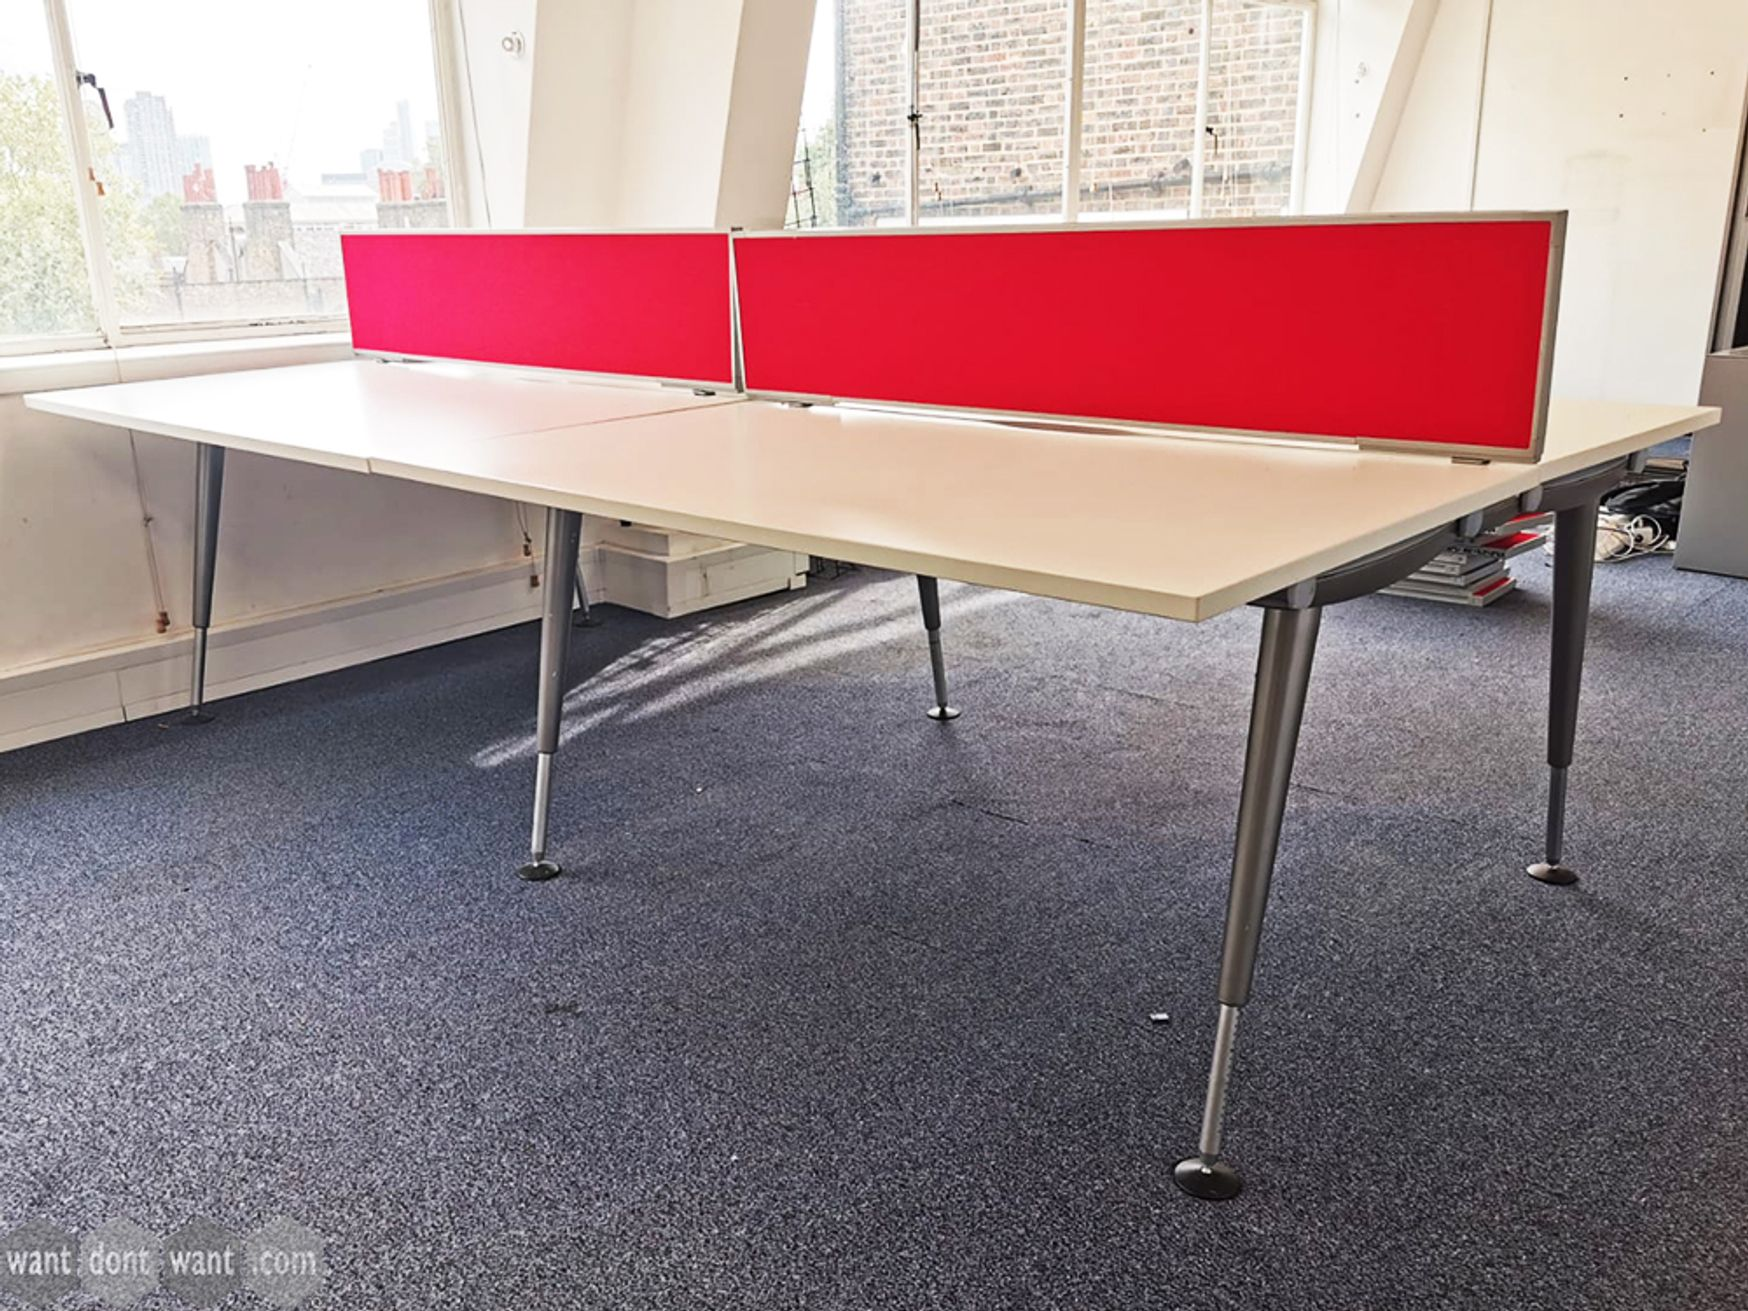 Used 1400mm Herman Miller Abak Bench Desk - 1 x 4 Person